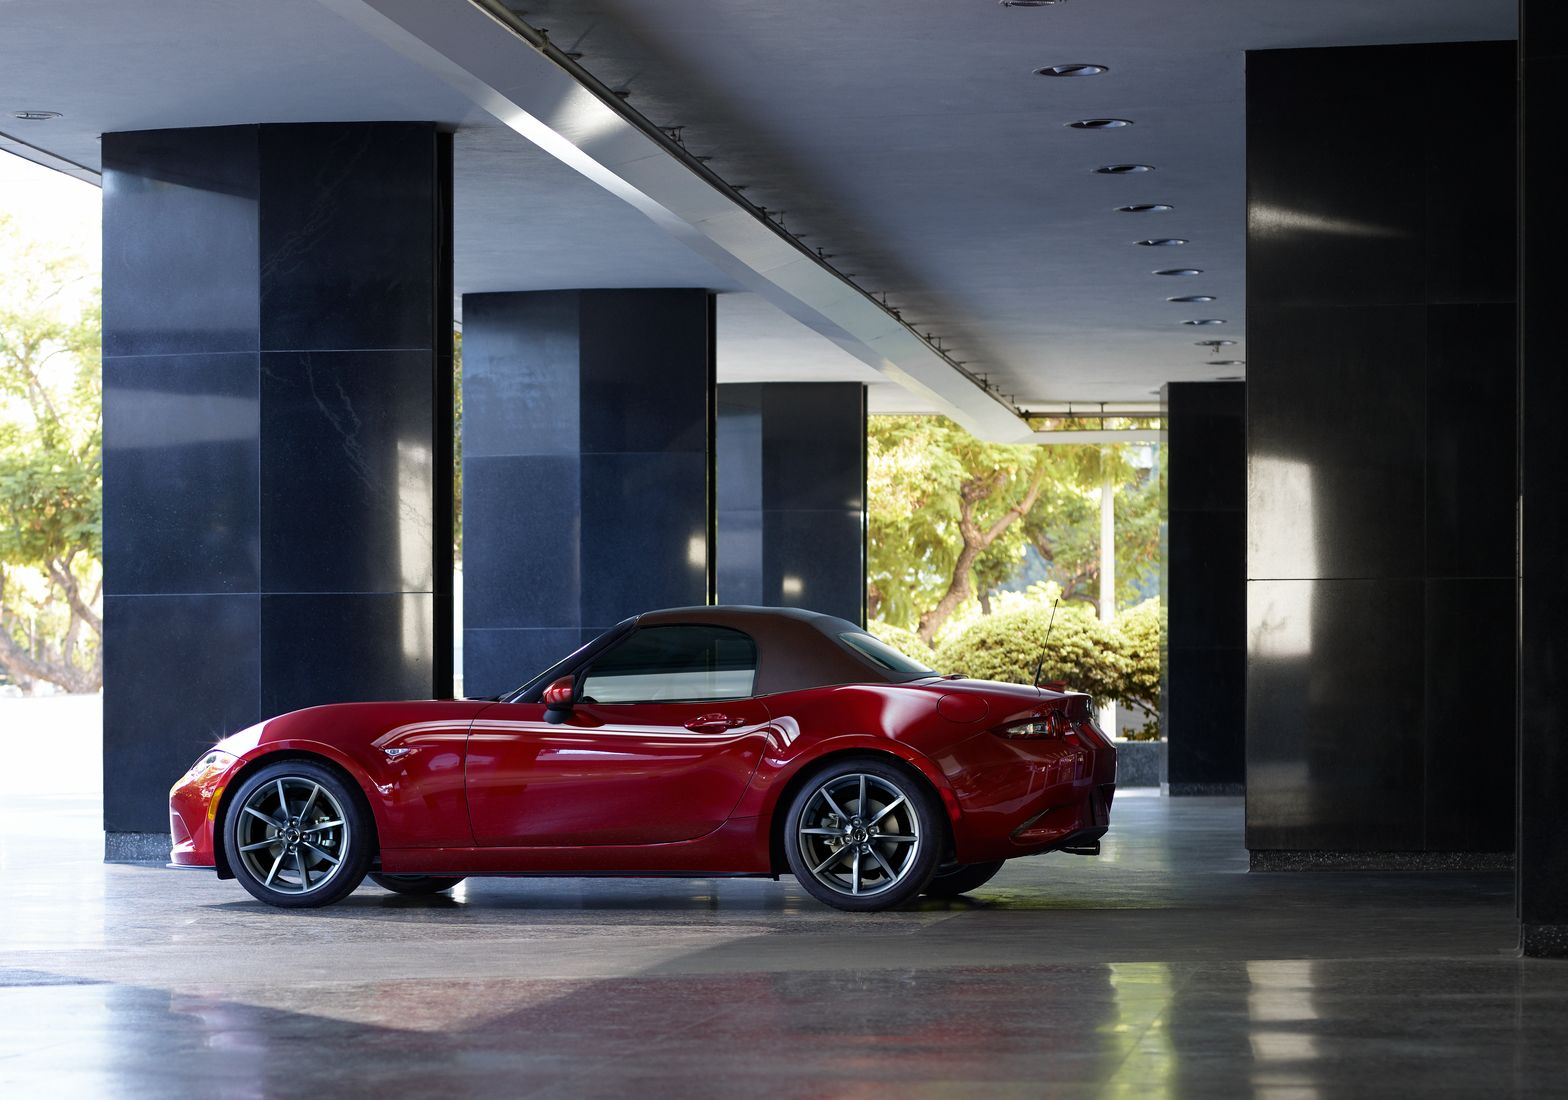 THE BUZZ IS STRONG ON THE NEW 2019 MAZDA MX-5!